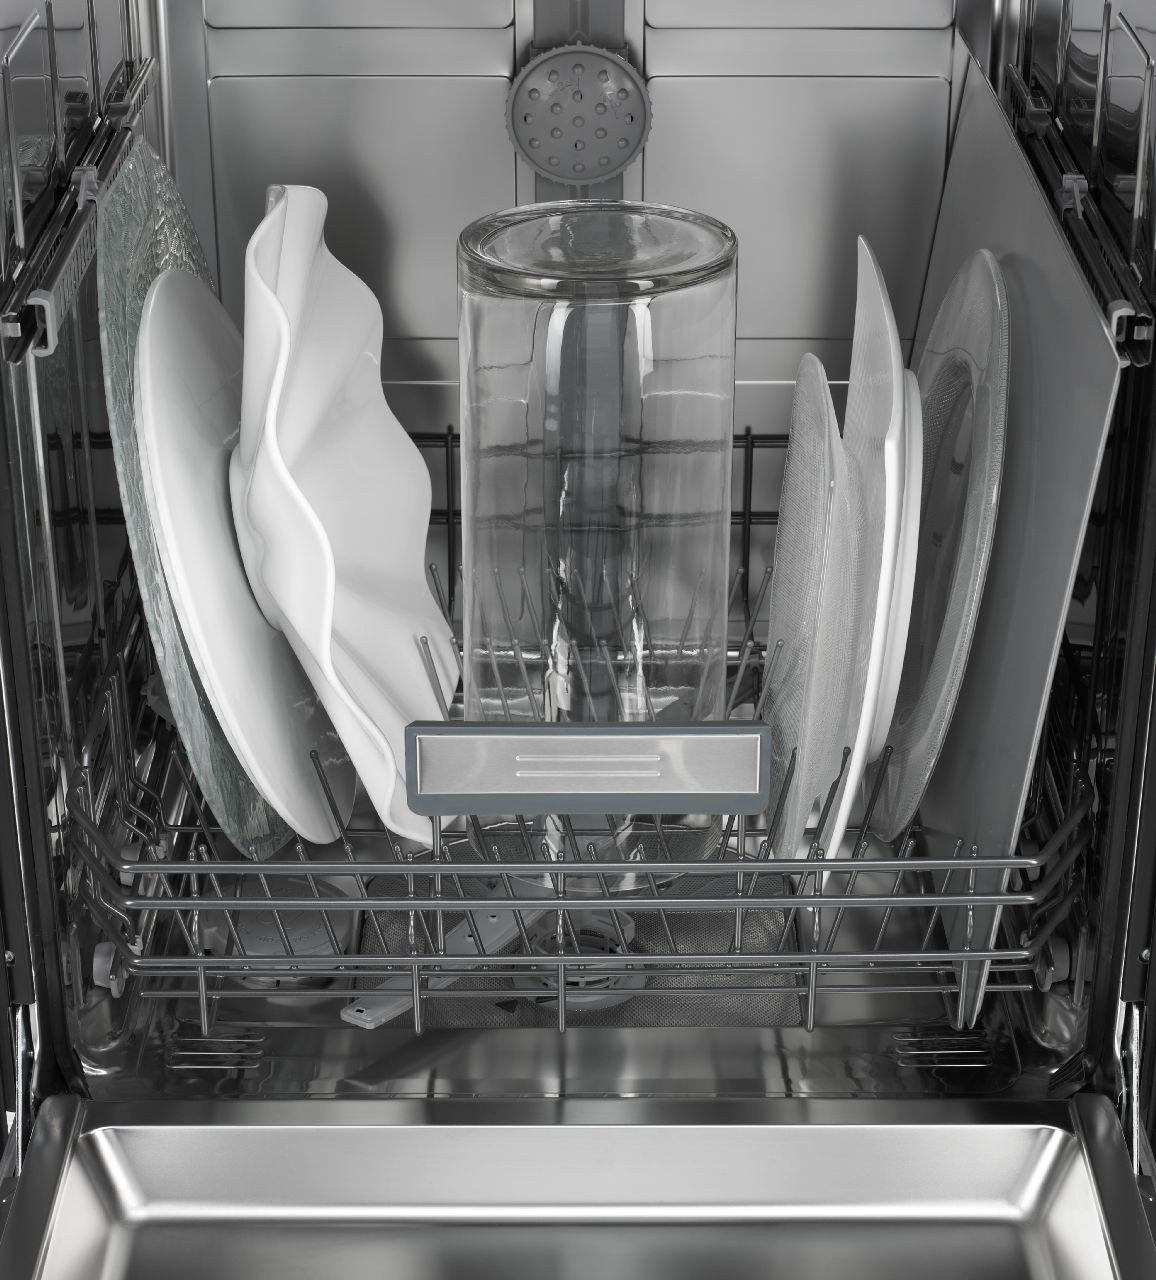 Jdb9600cwp Jenn Air 24 Quot Trifecta Wash Dishwasher